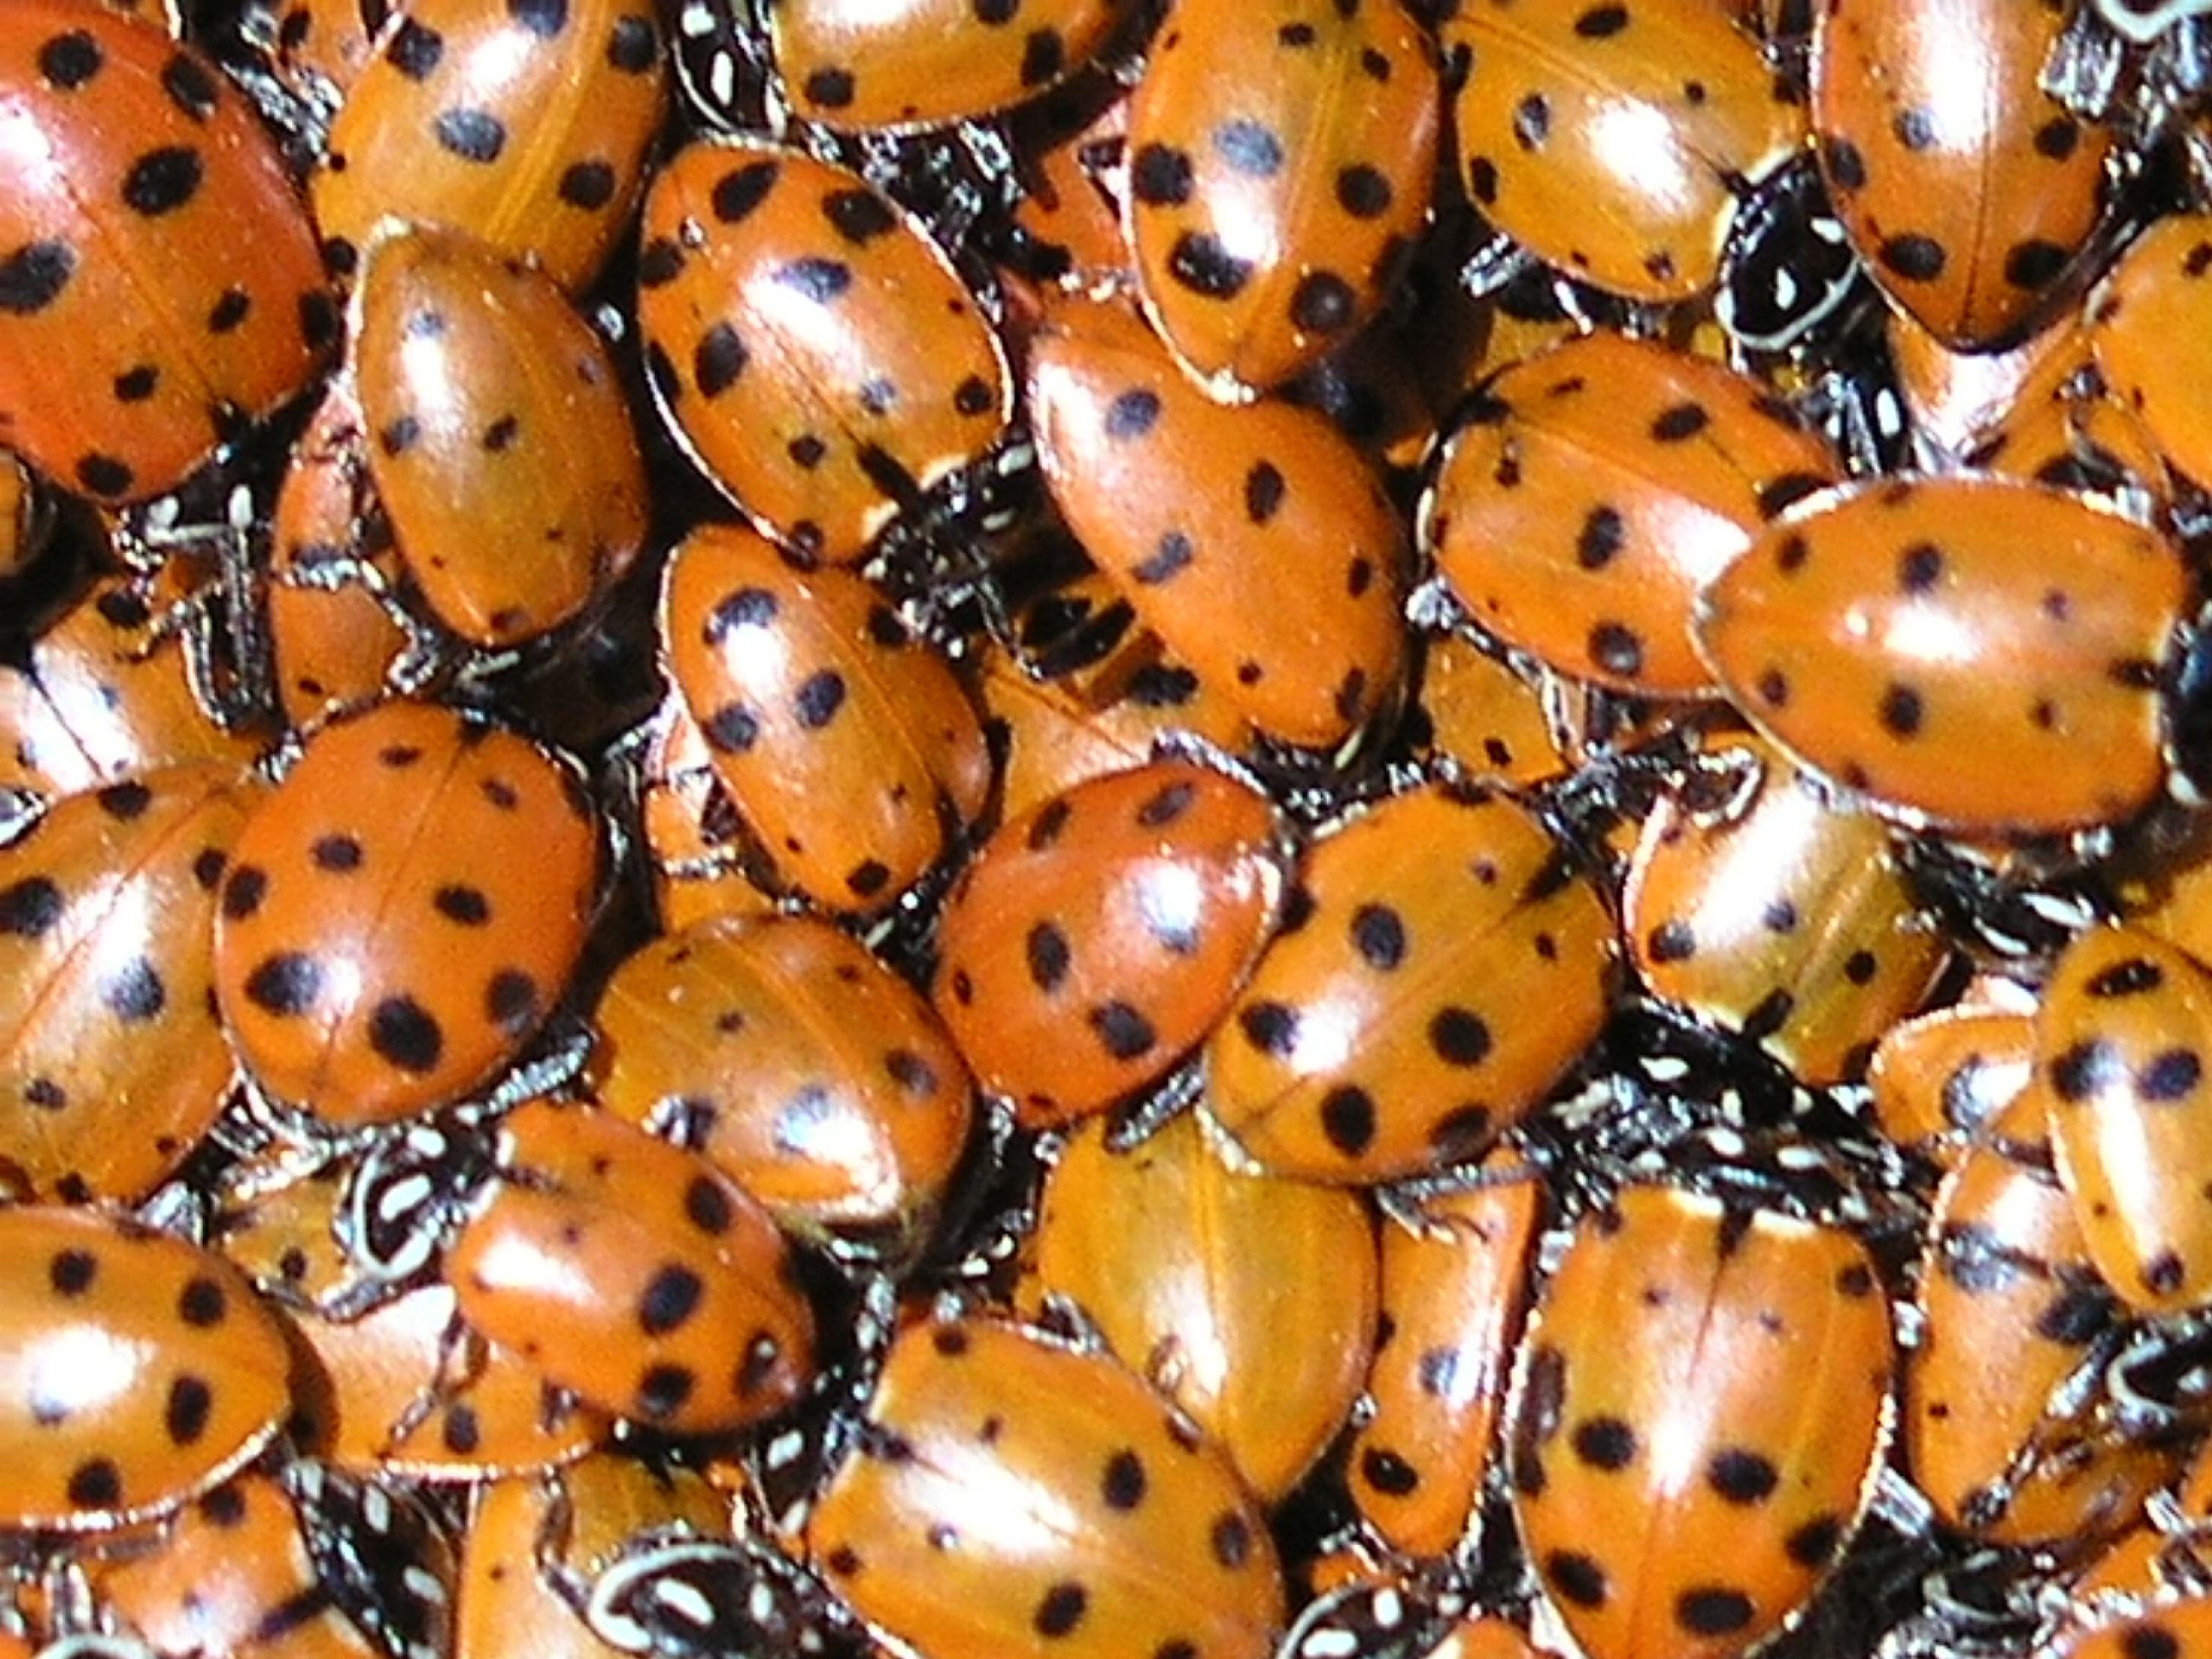 The scientific name for ladybug is Coccinellidae. Sounds romantic, eh?